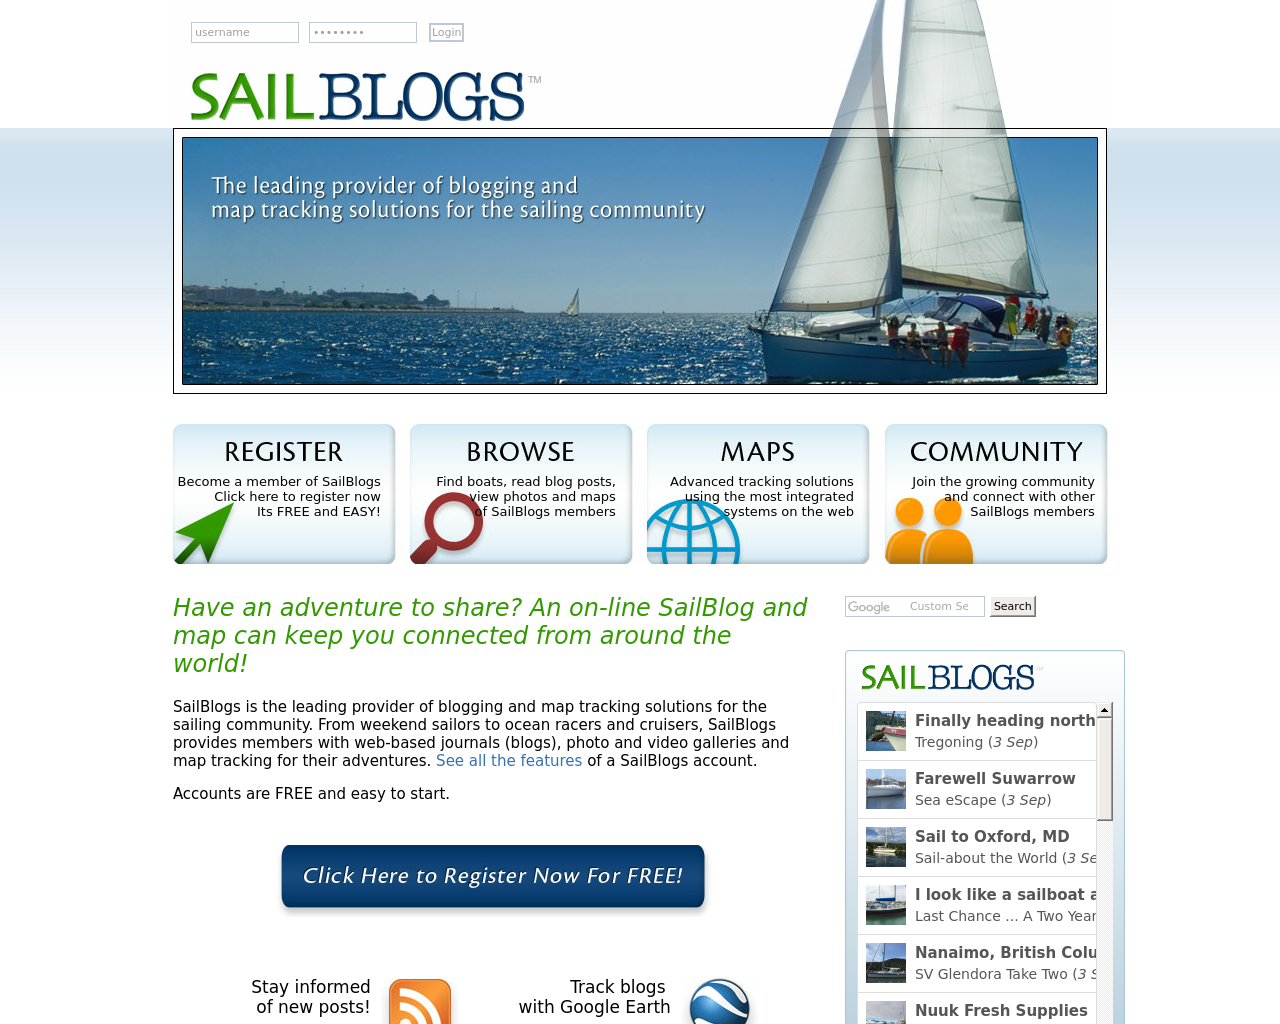 SailBlogs-Advertising-Reviews-Pricing